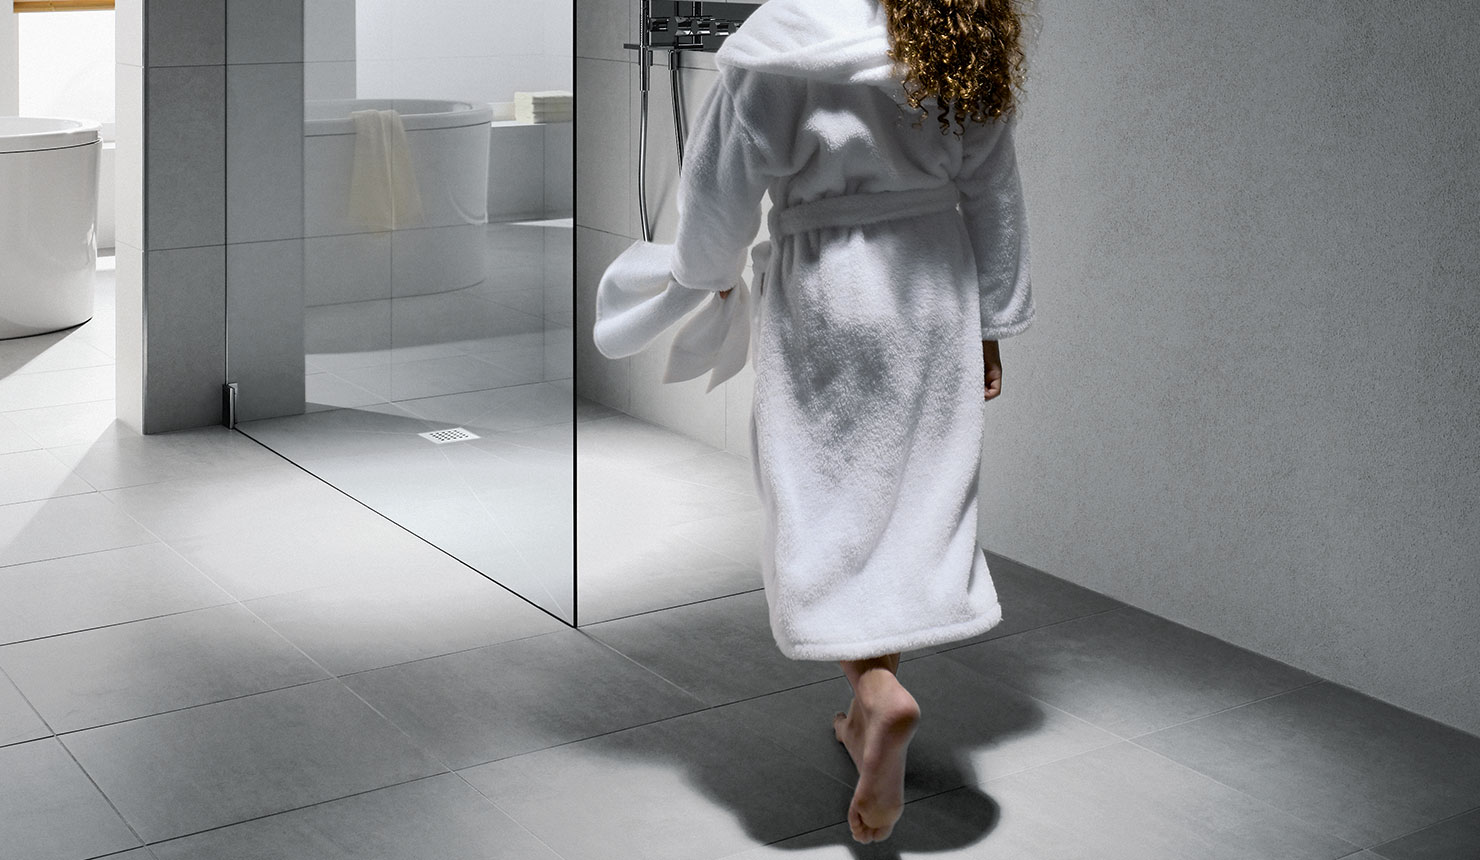 Kermi Walk-In shower enclosure on Point wet floor system